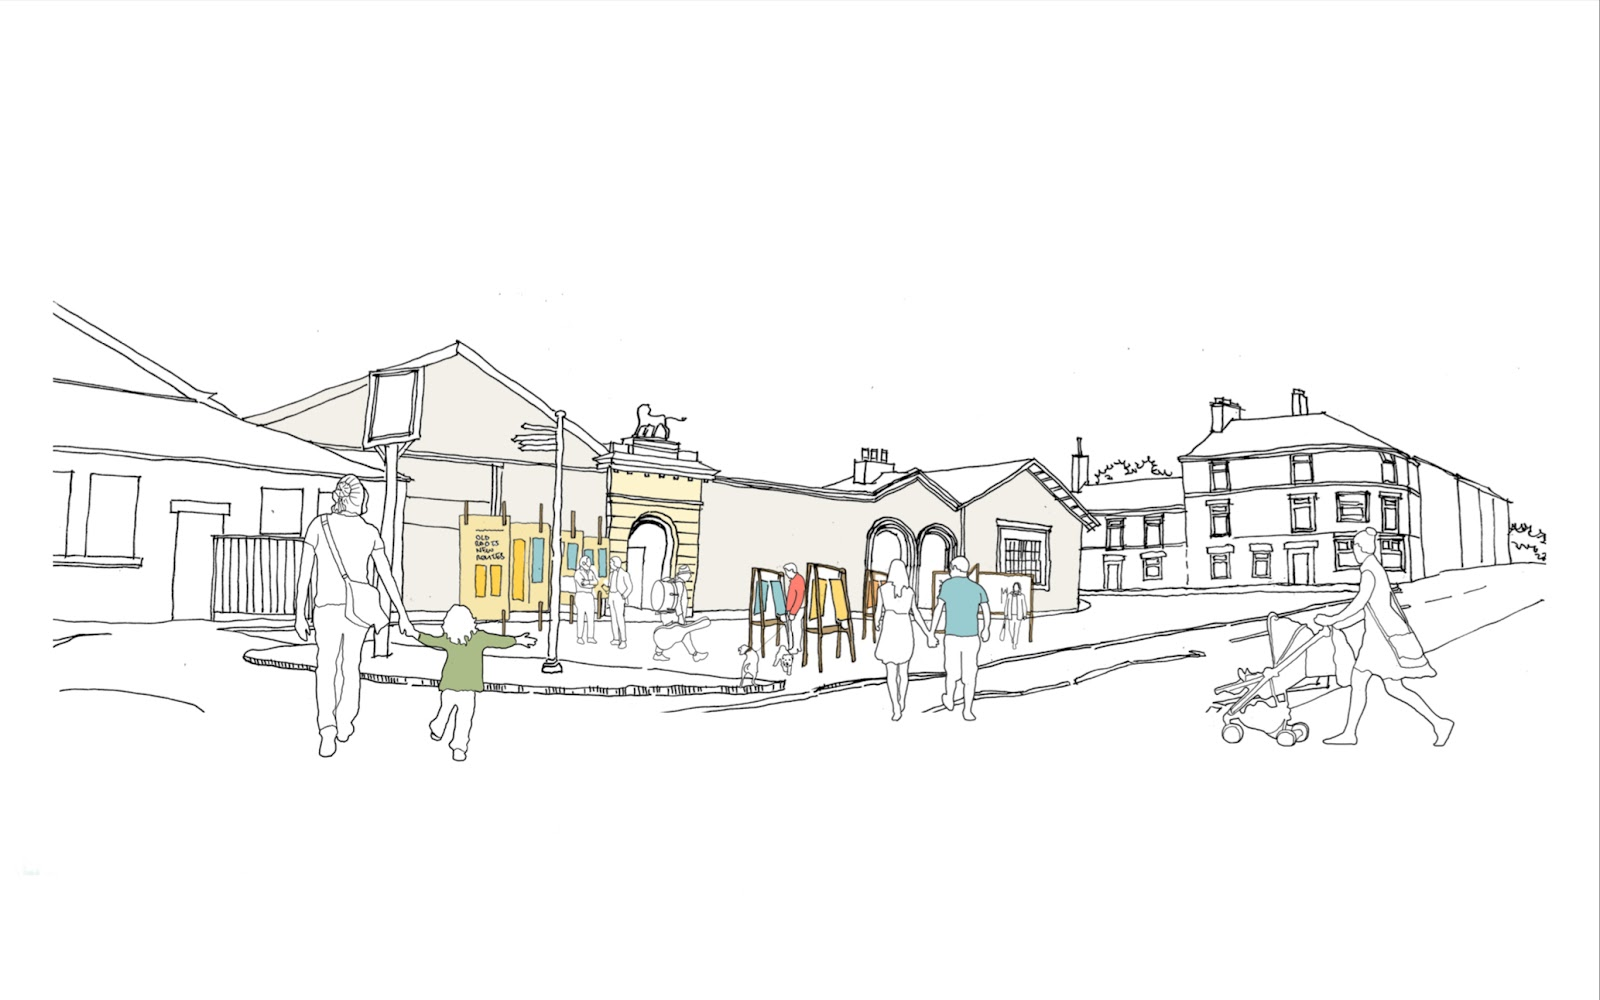 An illustration showing Glossop train station